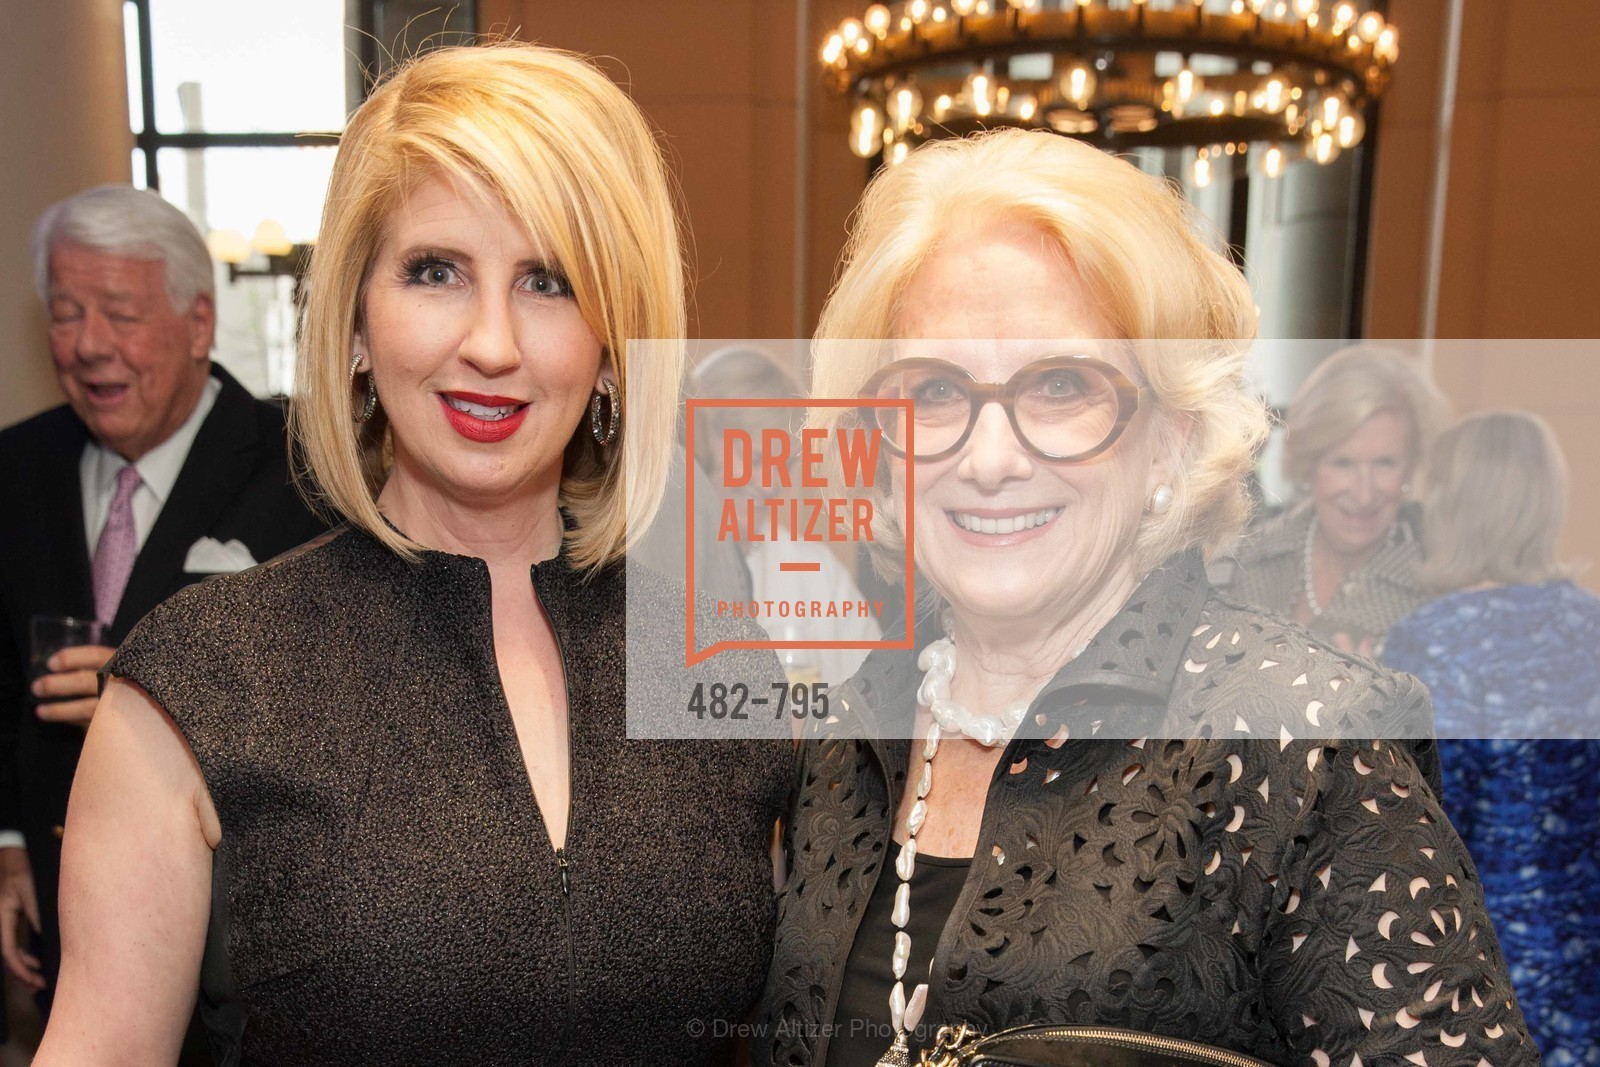 Roberta Economidis, Cynthia Molstad, COMPASS FAMILY SERVICES Annual Spring Benefit:  Every Family Needs A Home, US, April 22nd, 2015,Drew Altizer, Drew Altizer Photography, full-service agency, private events, San Francisco photographer, photographer california